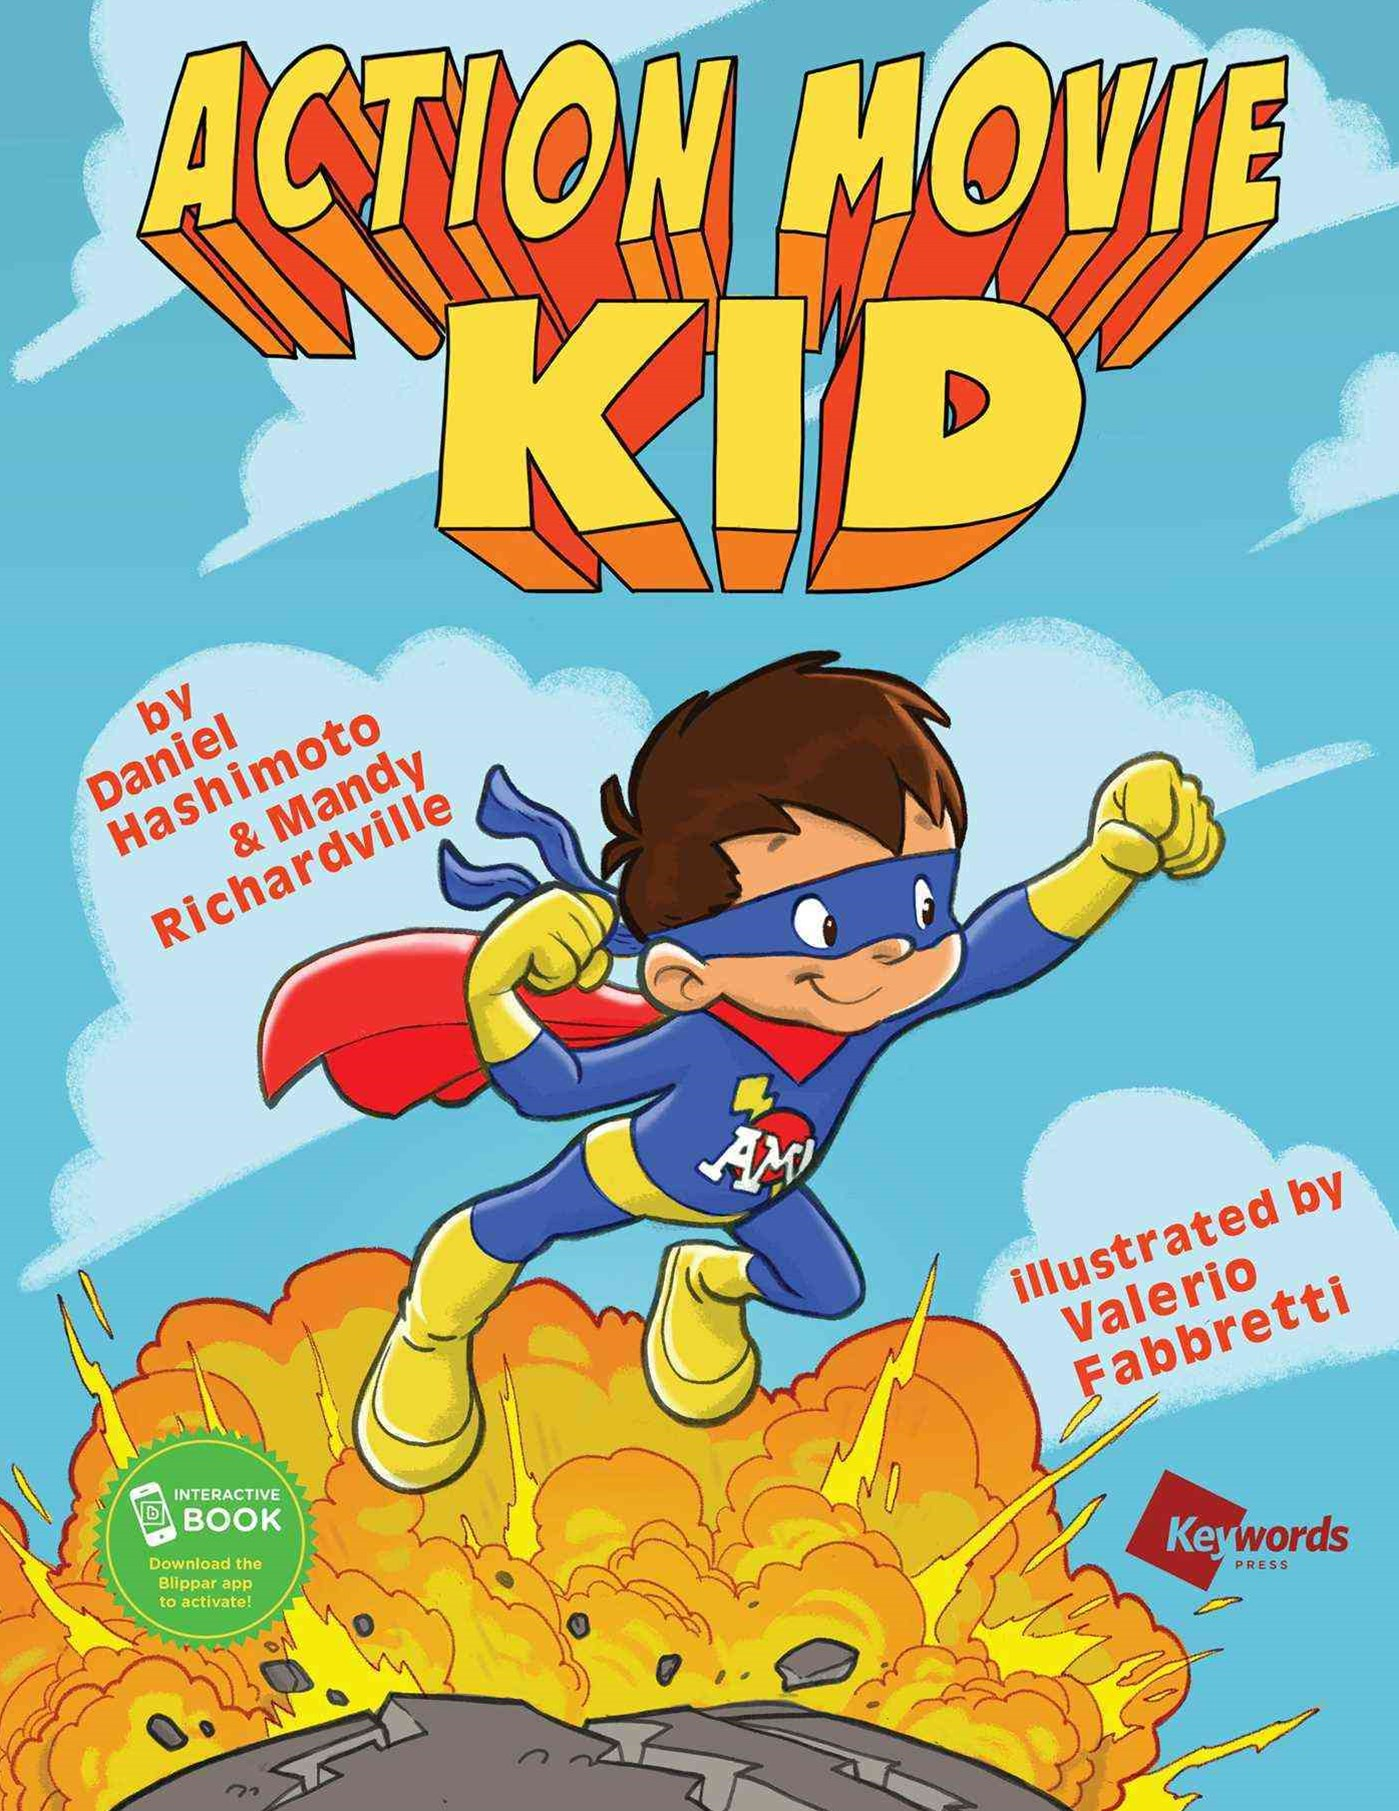 Action Movie Kid: All New Adventures Part I